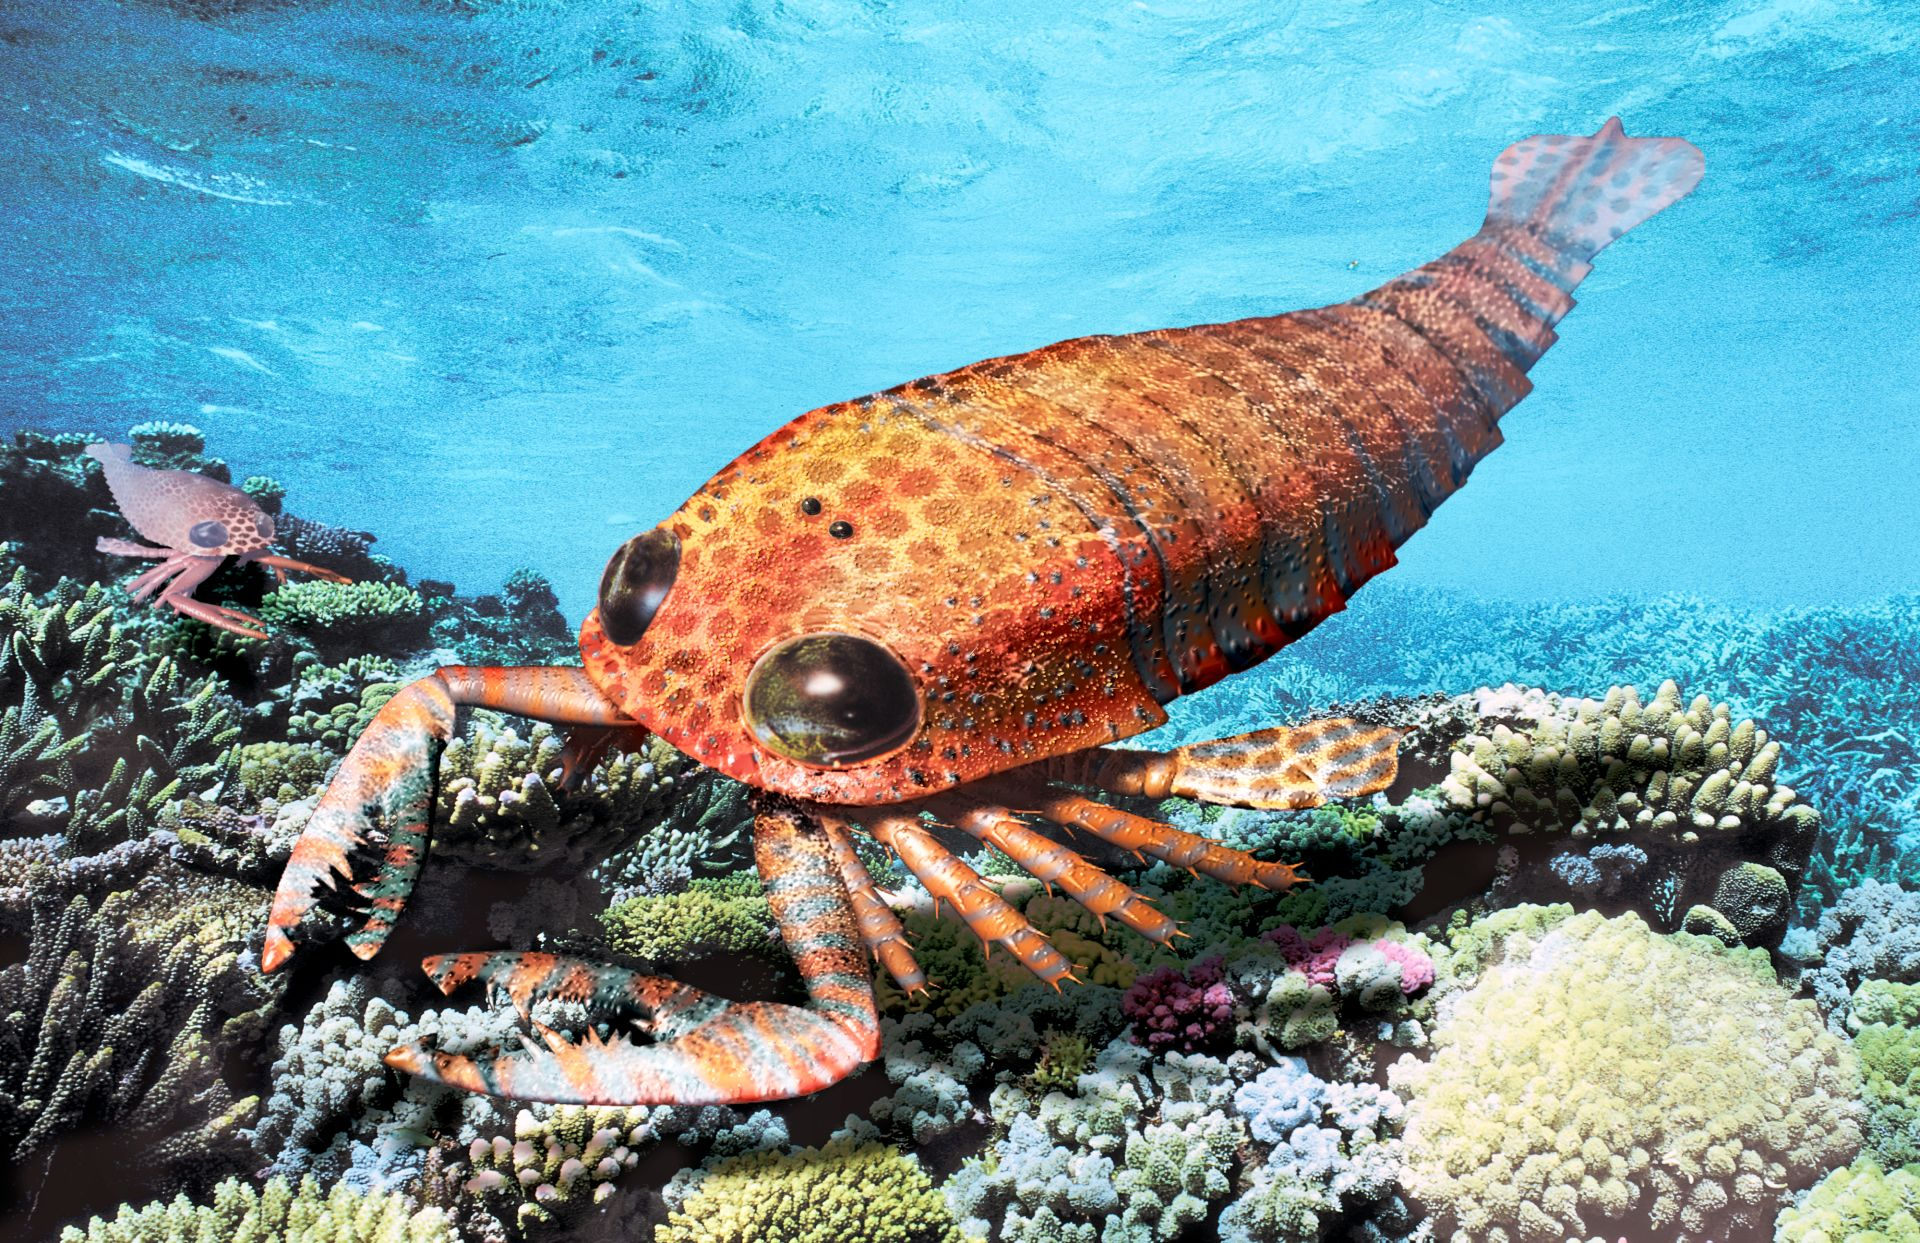 Worlds Oldest Sea Scorpion Found Measuring Nearly 6 Feet